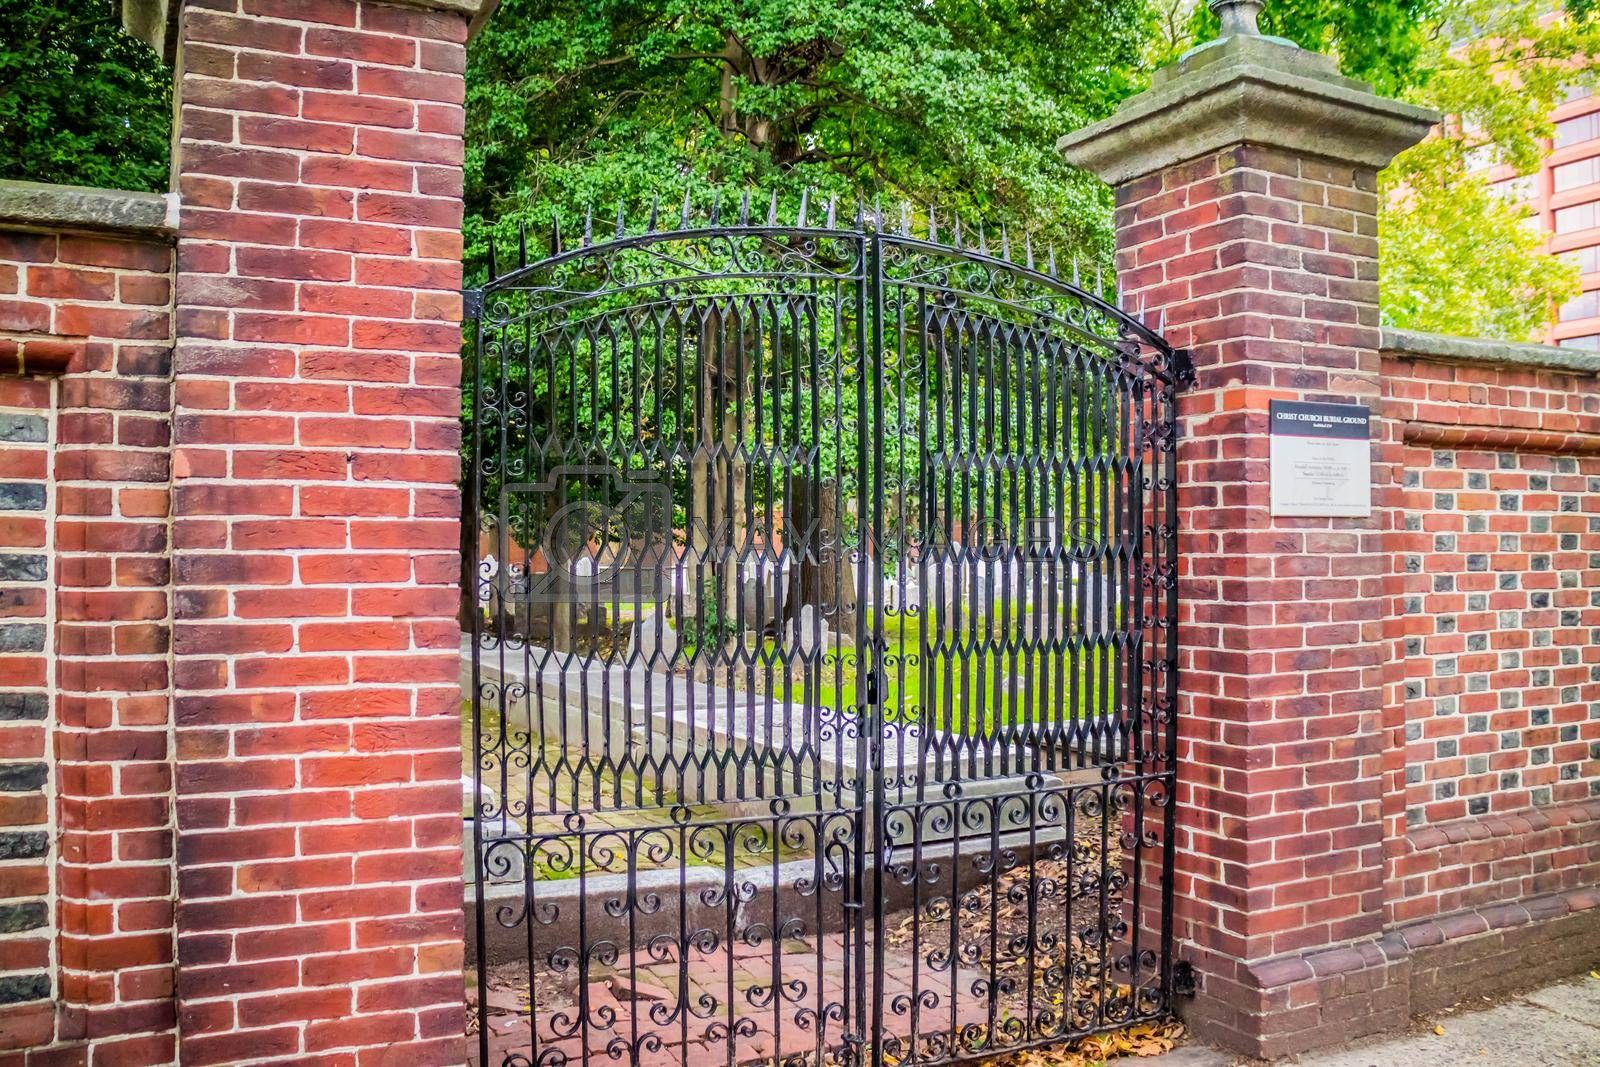 Royalty free image of Pennsylvania, PA, USA - Sept 22, 2018: The Christ Church Burial Ground by cherialguire